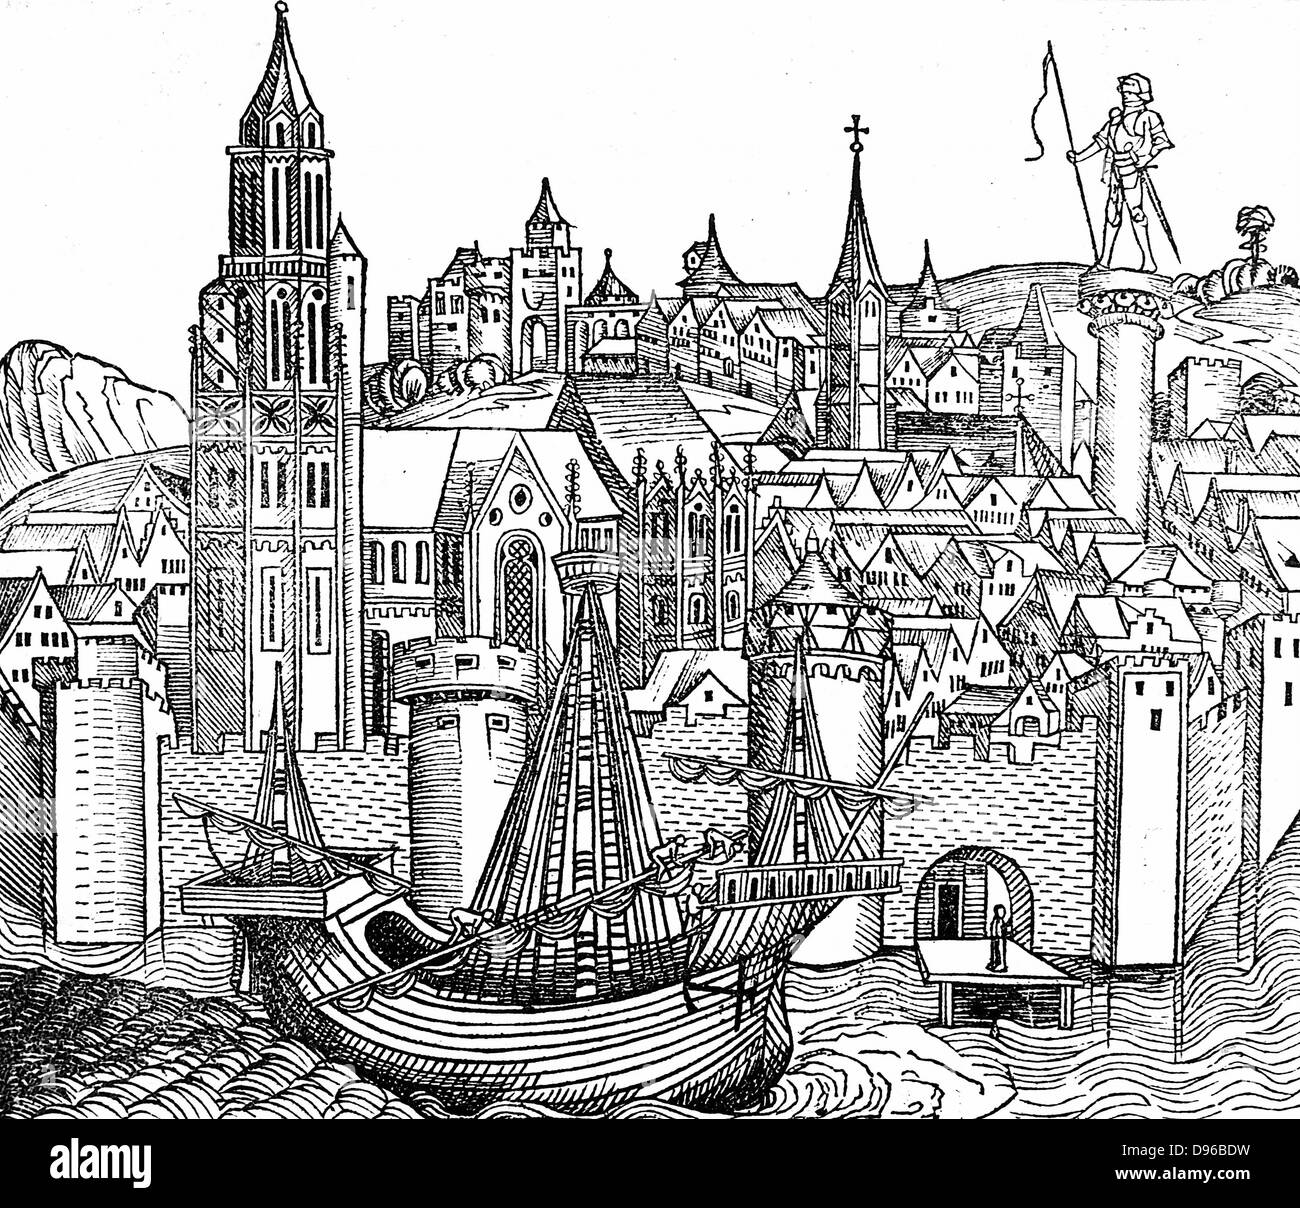 View of fortified city with a Cog, a type sailing vessel, in foreground. Watergate bottom right. From Hartman Schedel - Stock Image